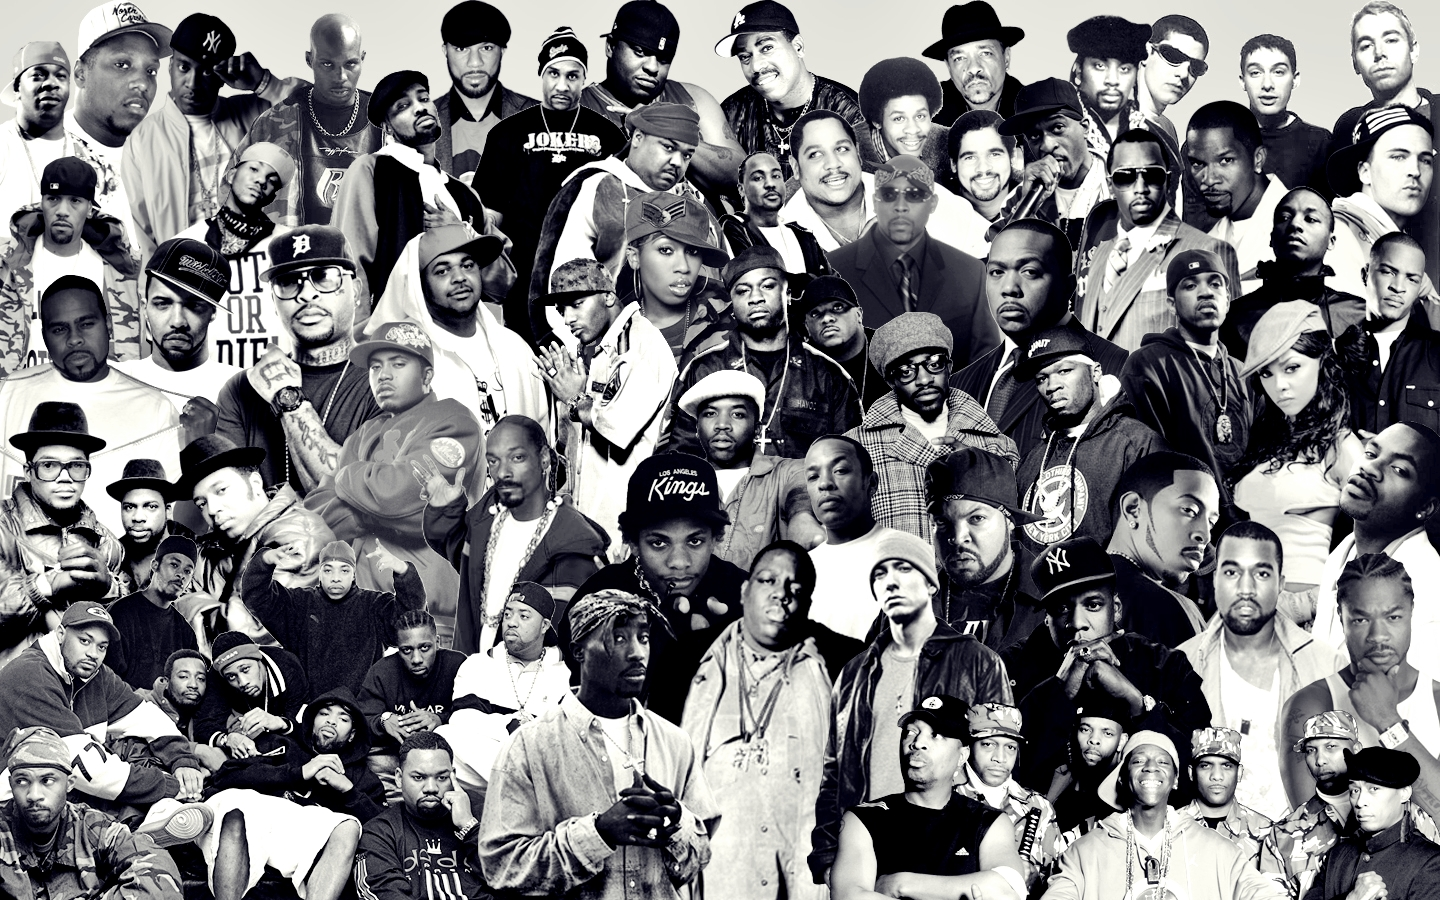 the effects of hip hop rap music In 2017, for the first time in history, hip hop/r&b officially became the most consumed music genre in america consumption of rap music increased by 25 percent from 2016, recording the second-largest growth of any music category.